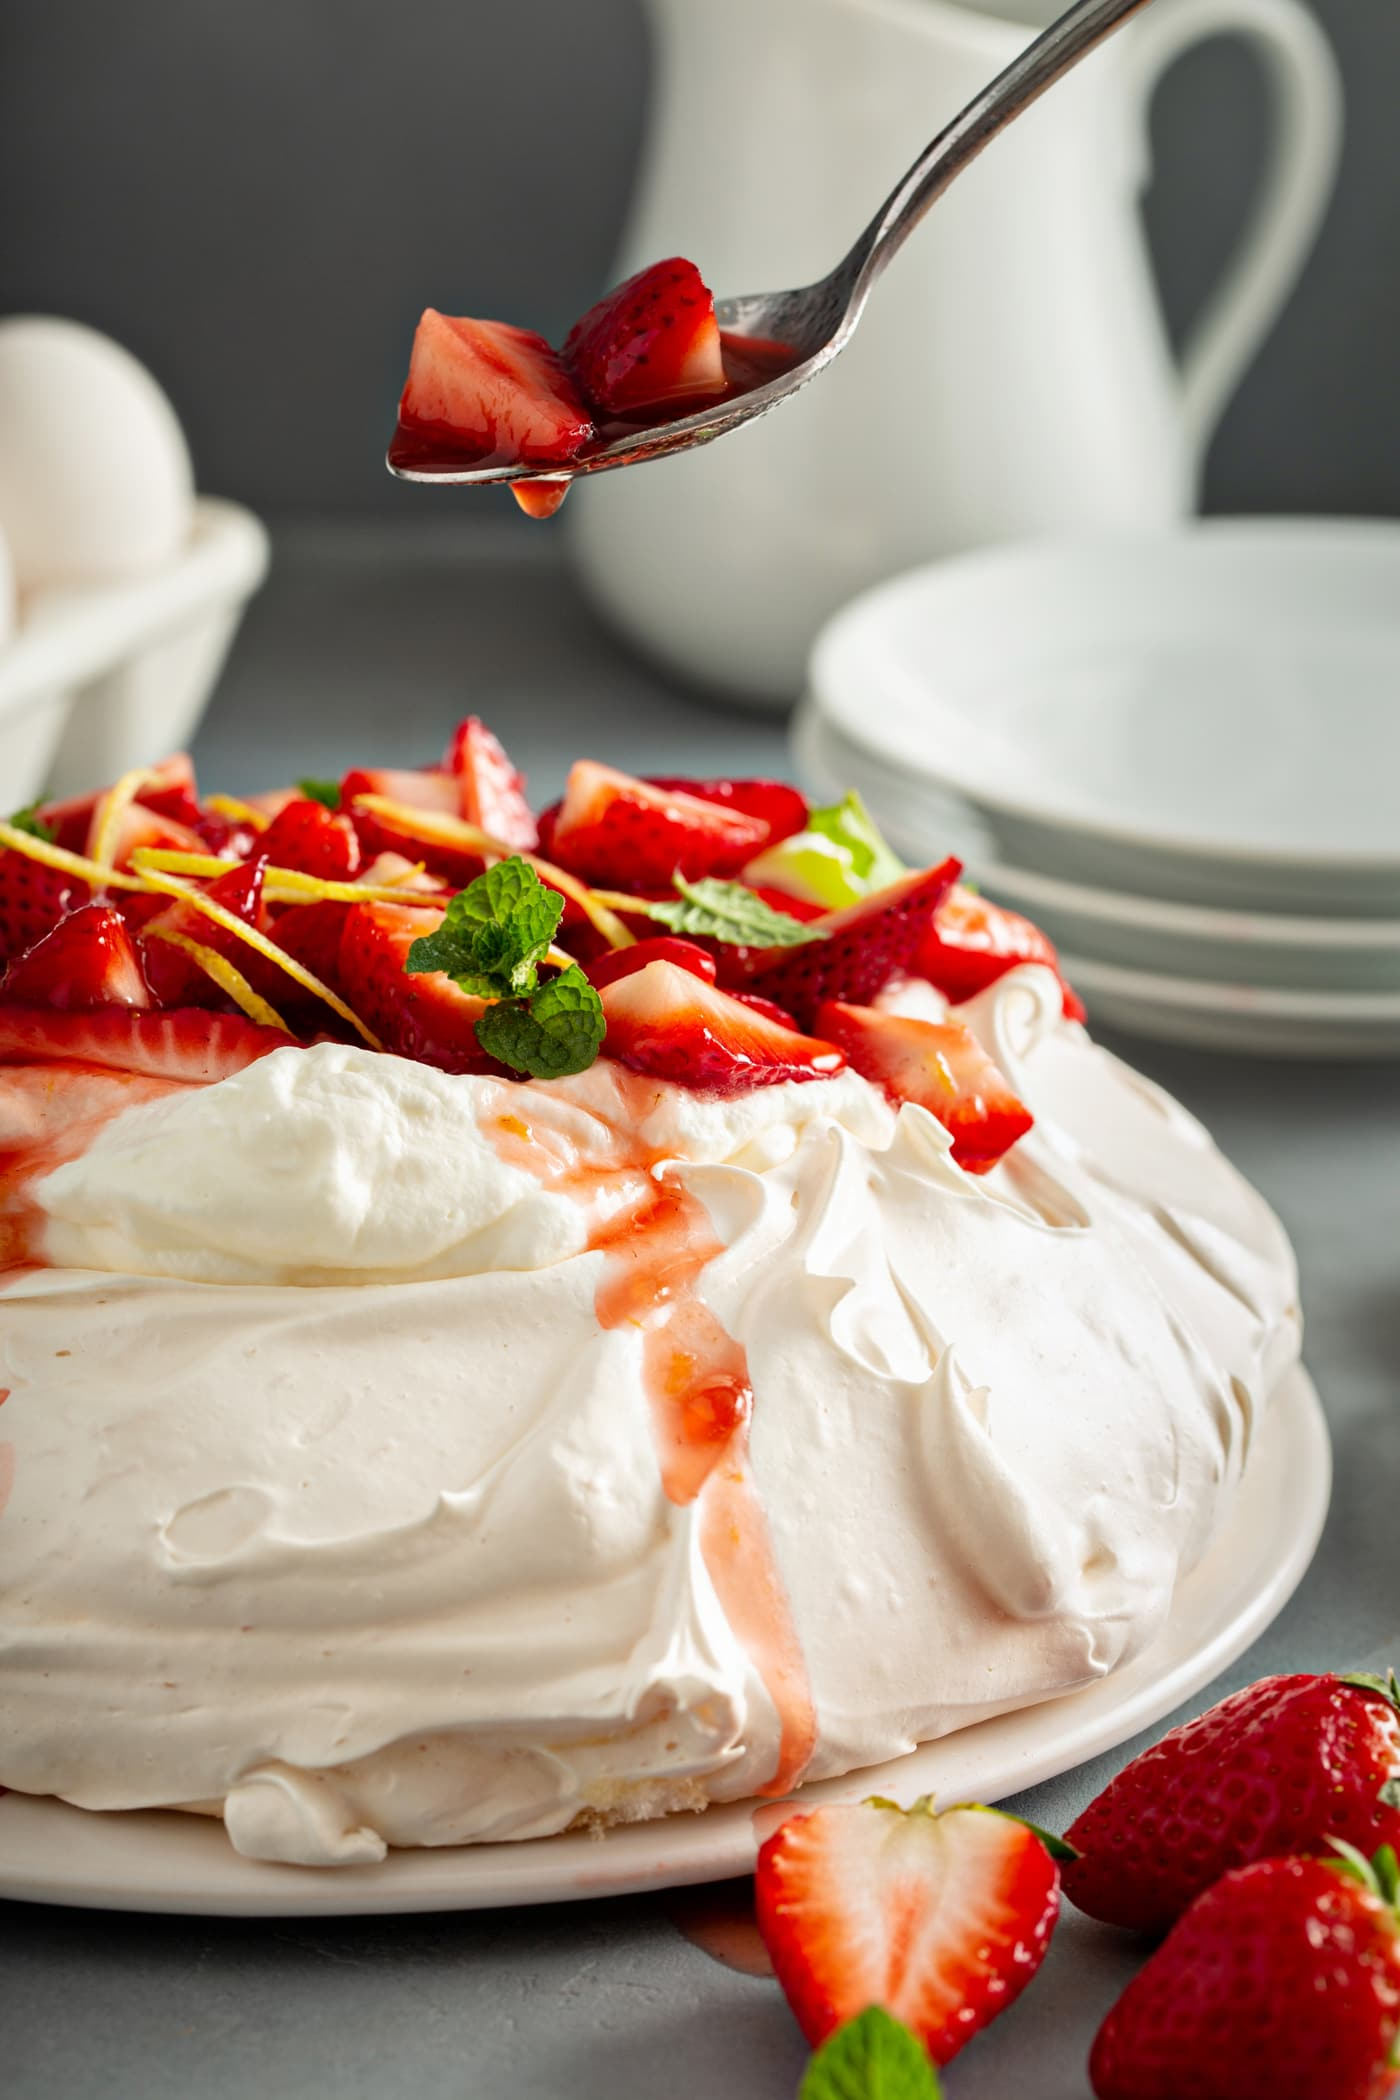 Pavlova on a serving plate. It is topped with whipped cream, sliced strawberries, slivers of lemon rind, and a few mint leaves. A spoon with strawberries and juice drizzling down is above the pavlova. There are white dessert plates, eggs,